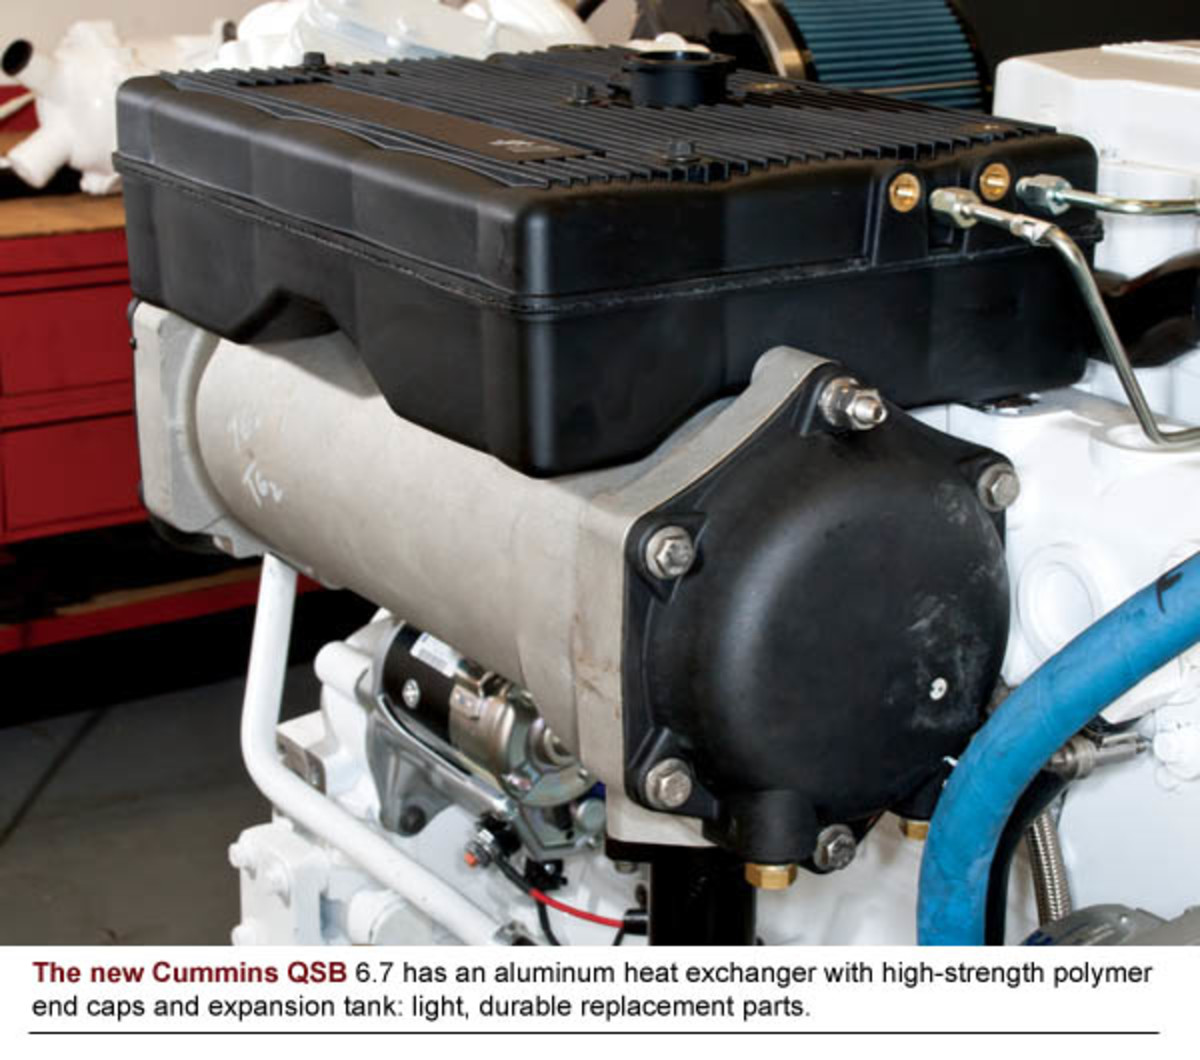 The new Cummins QSB 6.7 has an aluminum heat exchanger with high-strength polymer end caps and expansion tank: light, durable replacement parts.